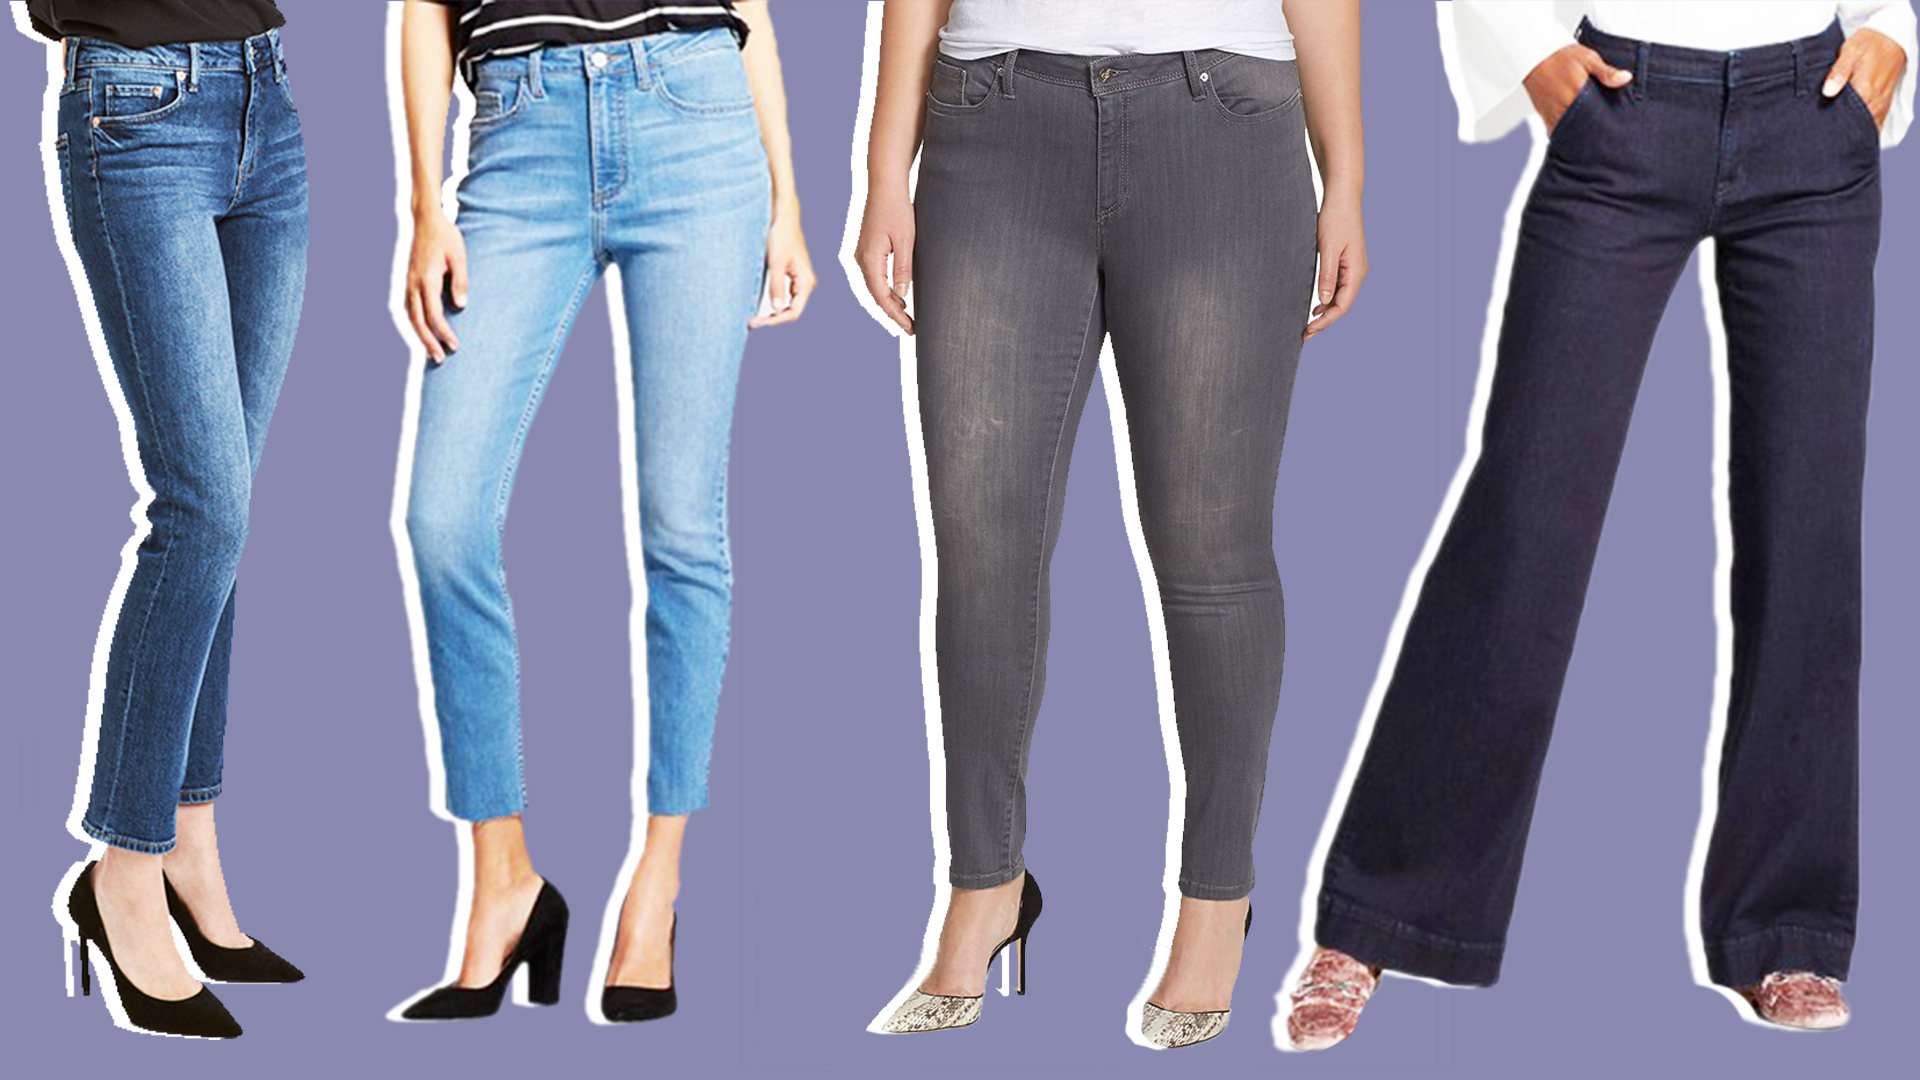 dd37bcd585b The best places to buy jeans online for less than $50